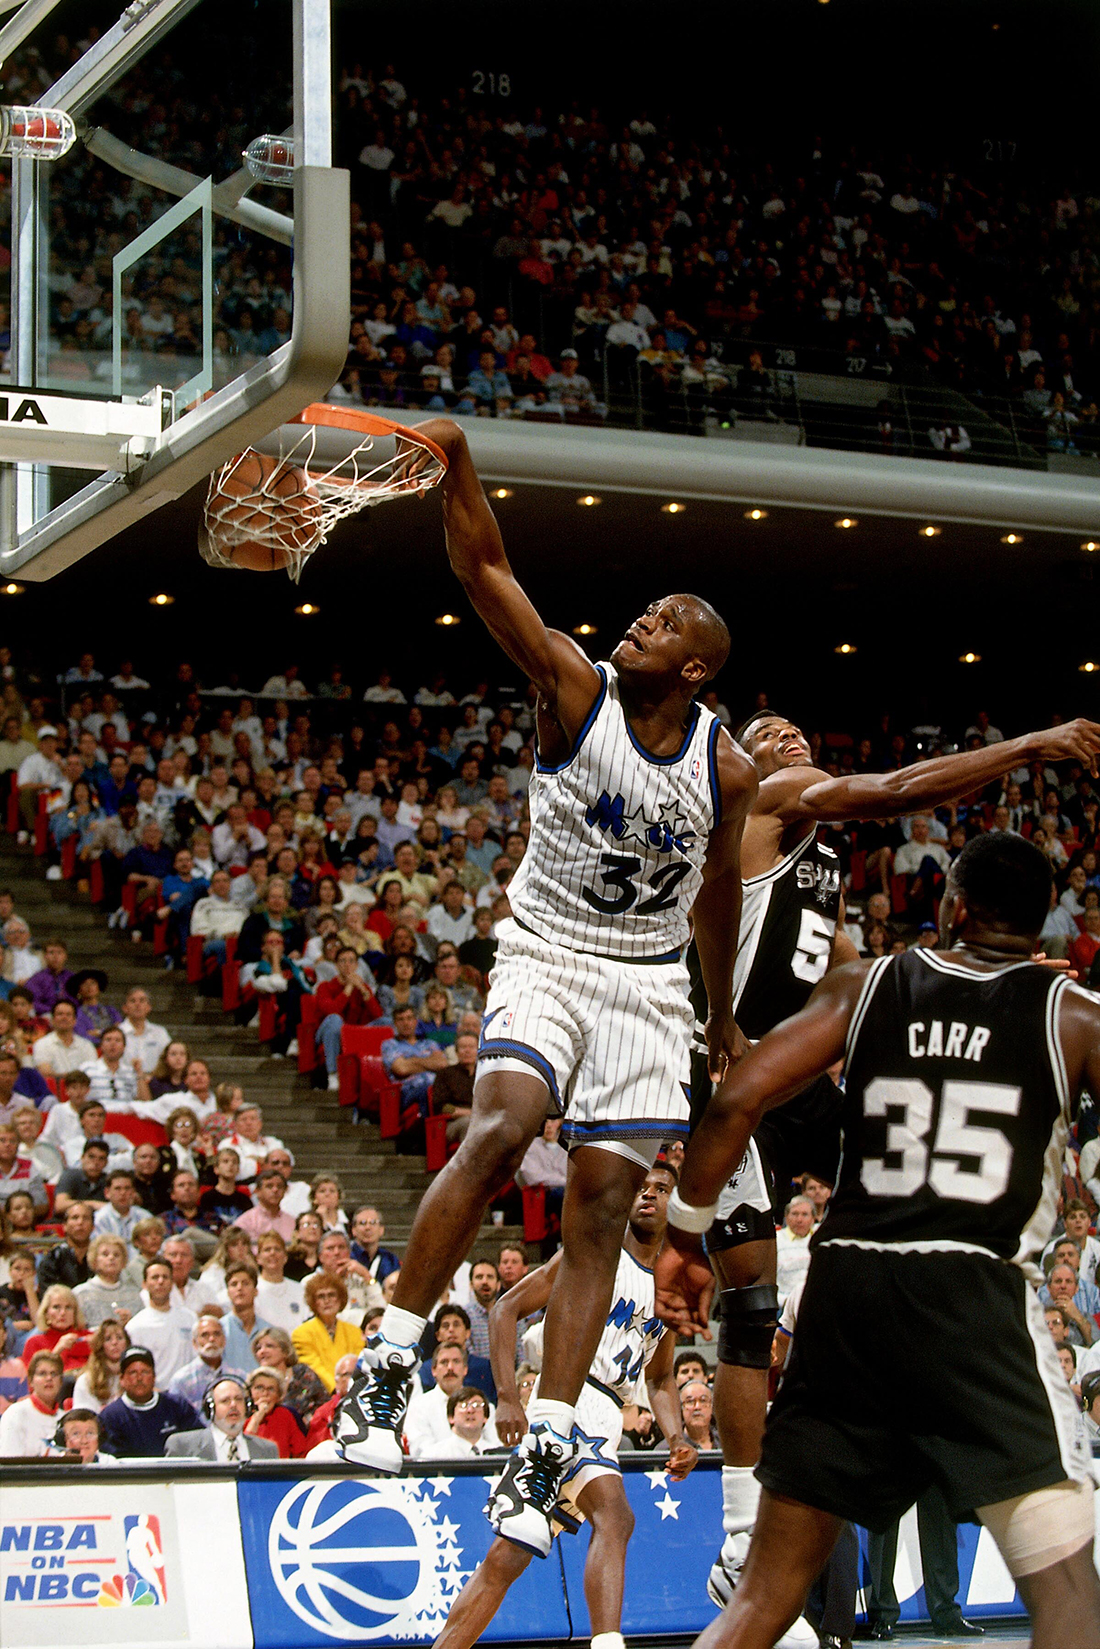 Copyright 1993 NBAE (Photo by Lou Capozzola/NBAE via Getty Images